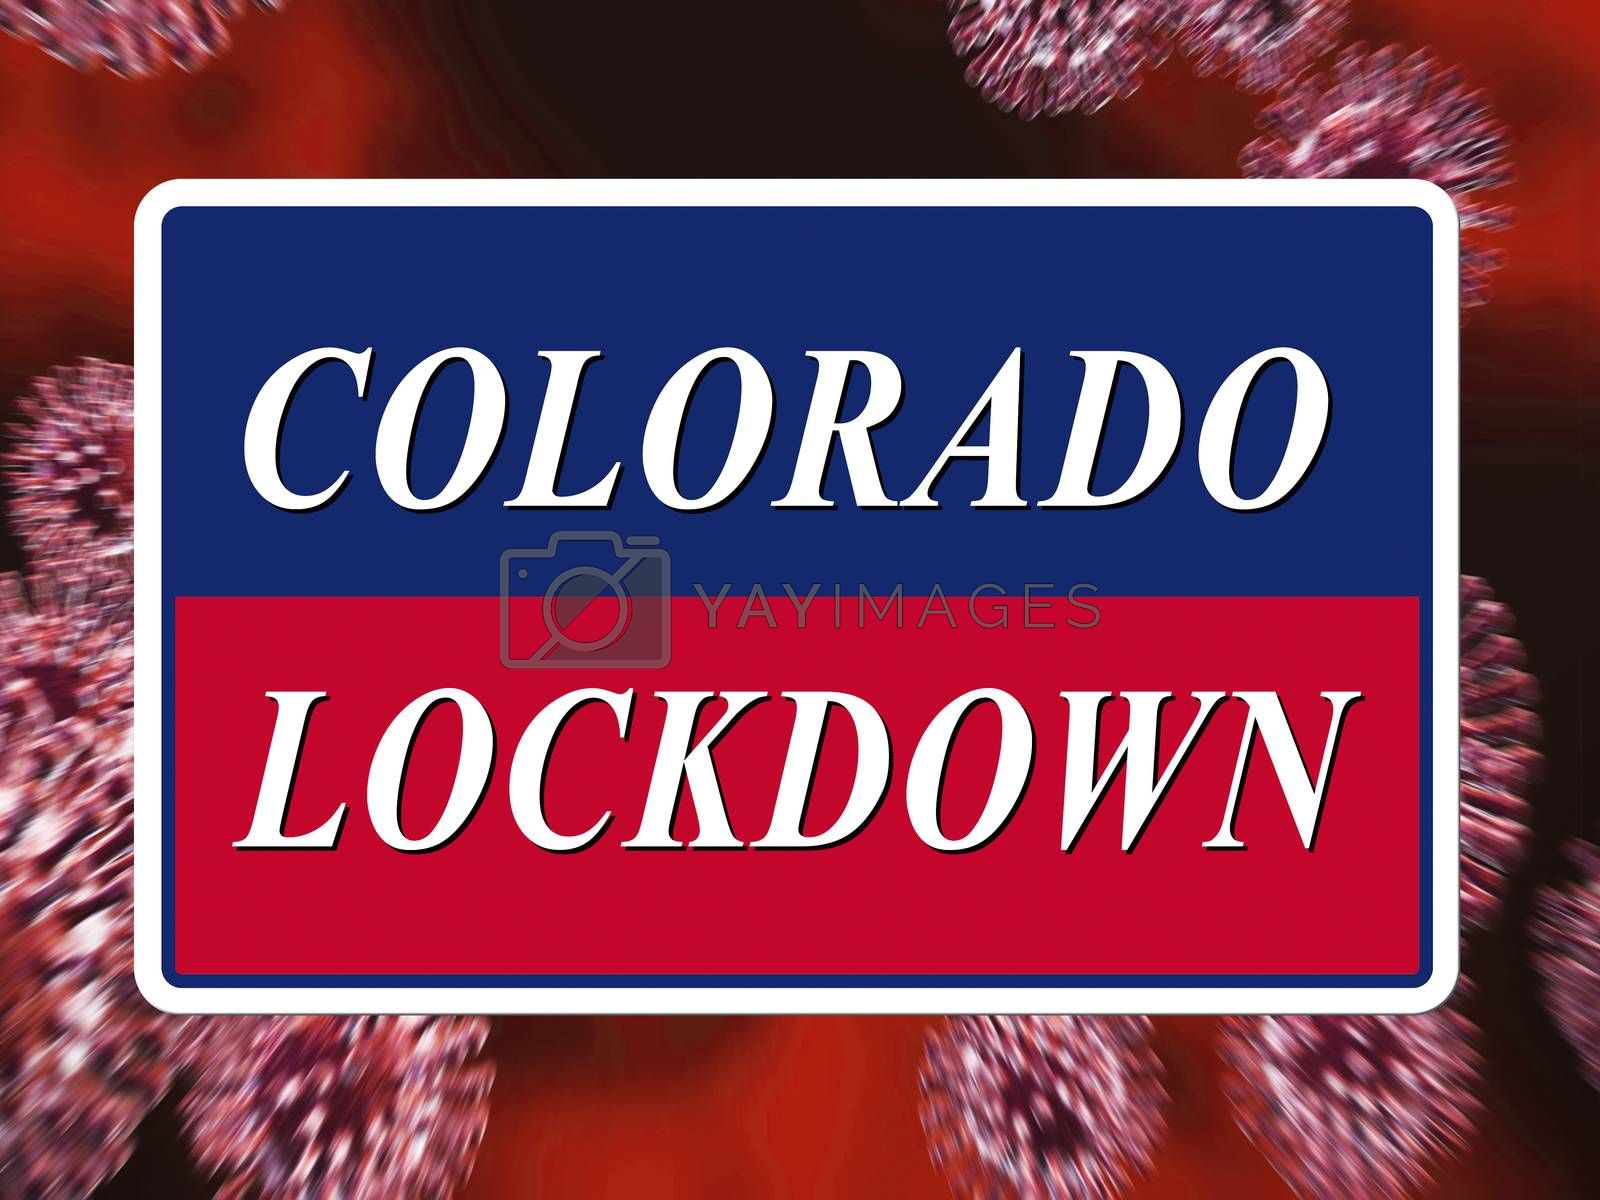 Colorado lockdown means curfew from coronavirus covid19 - 3d Ill by stuartmiles